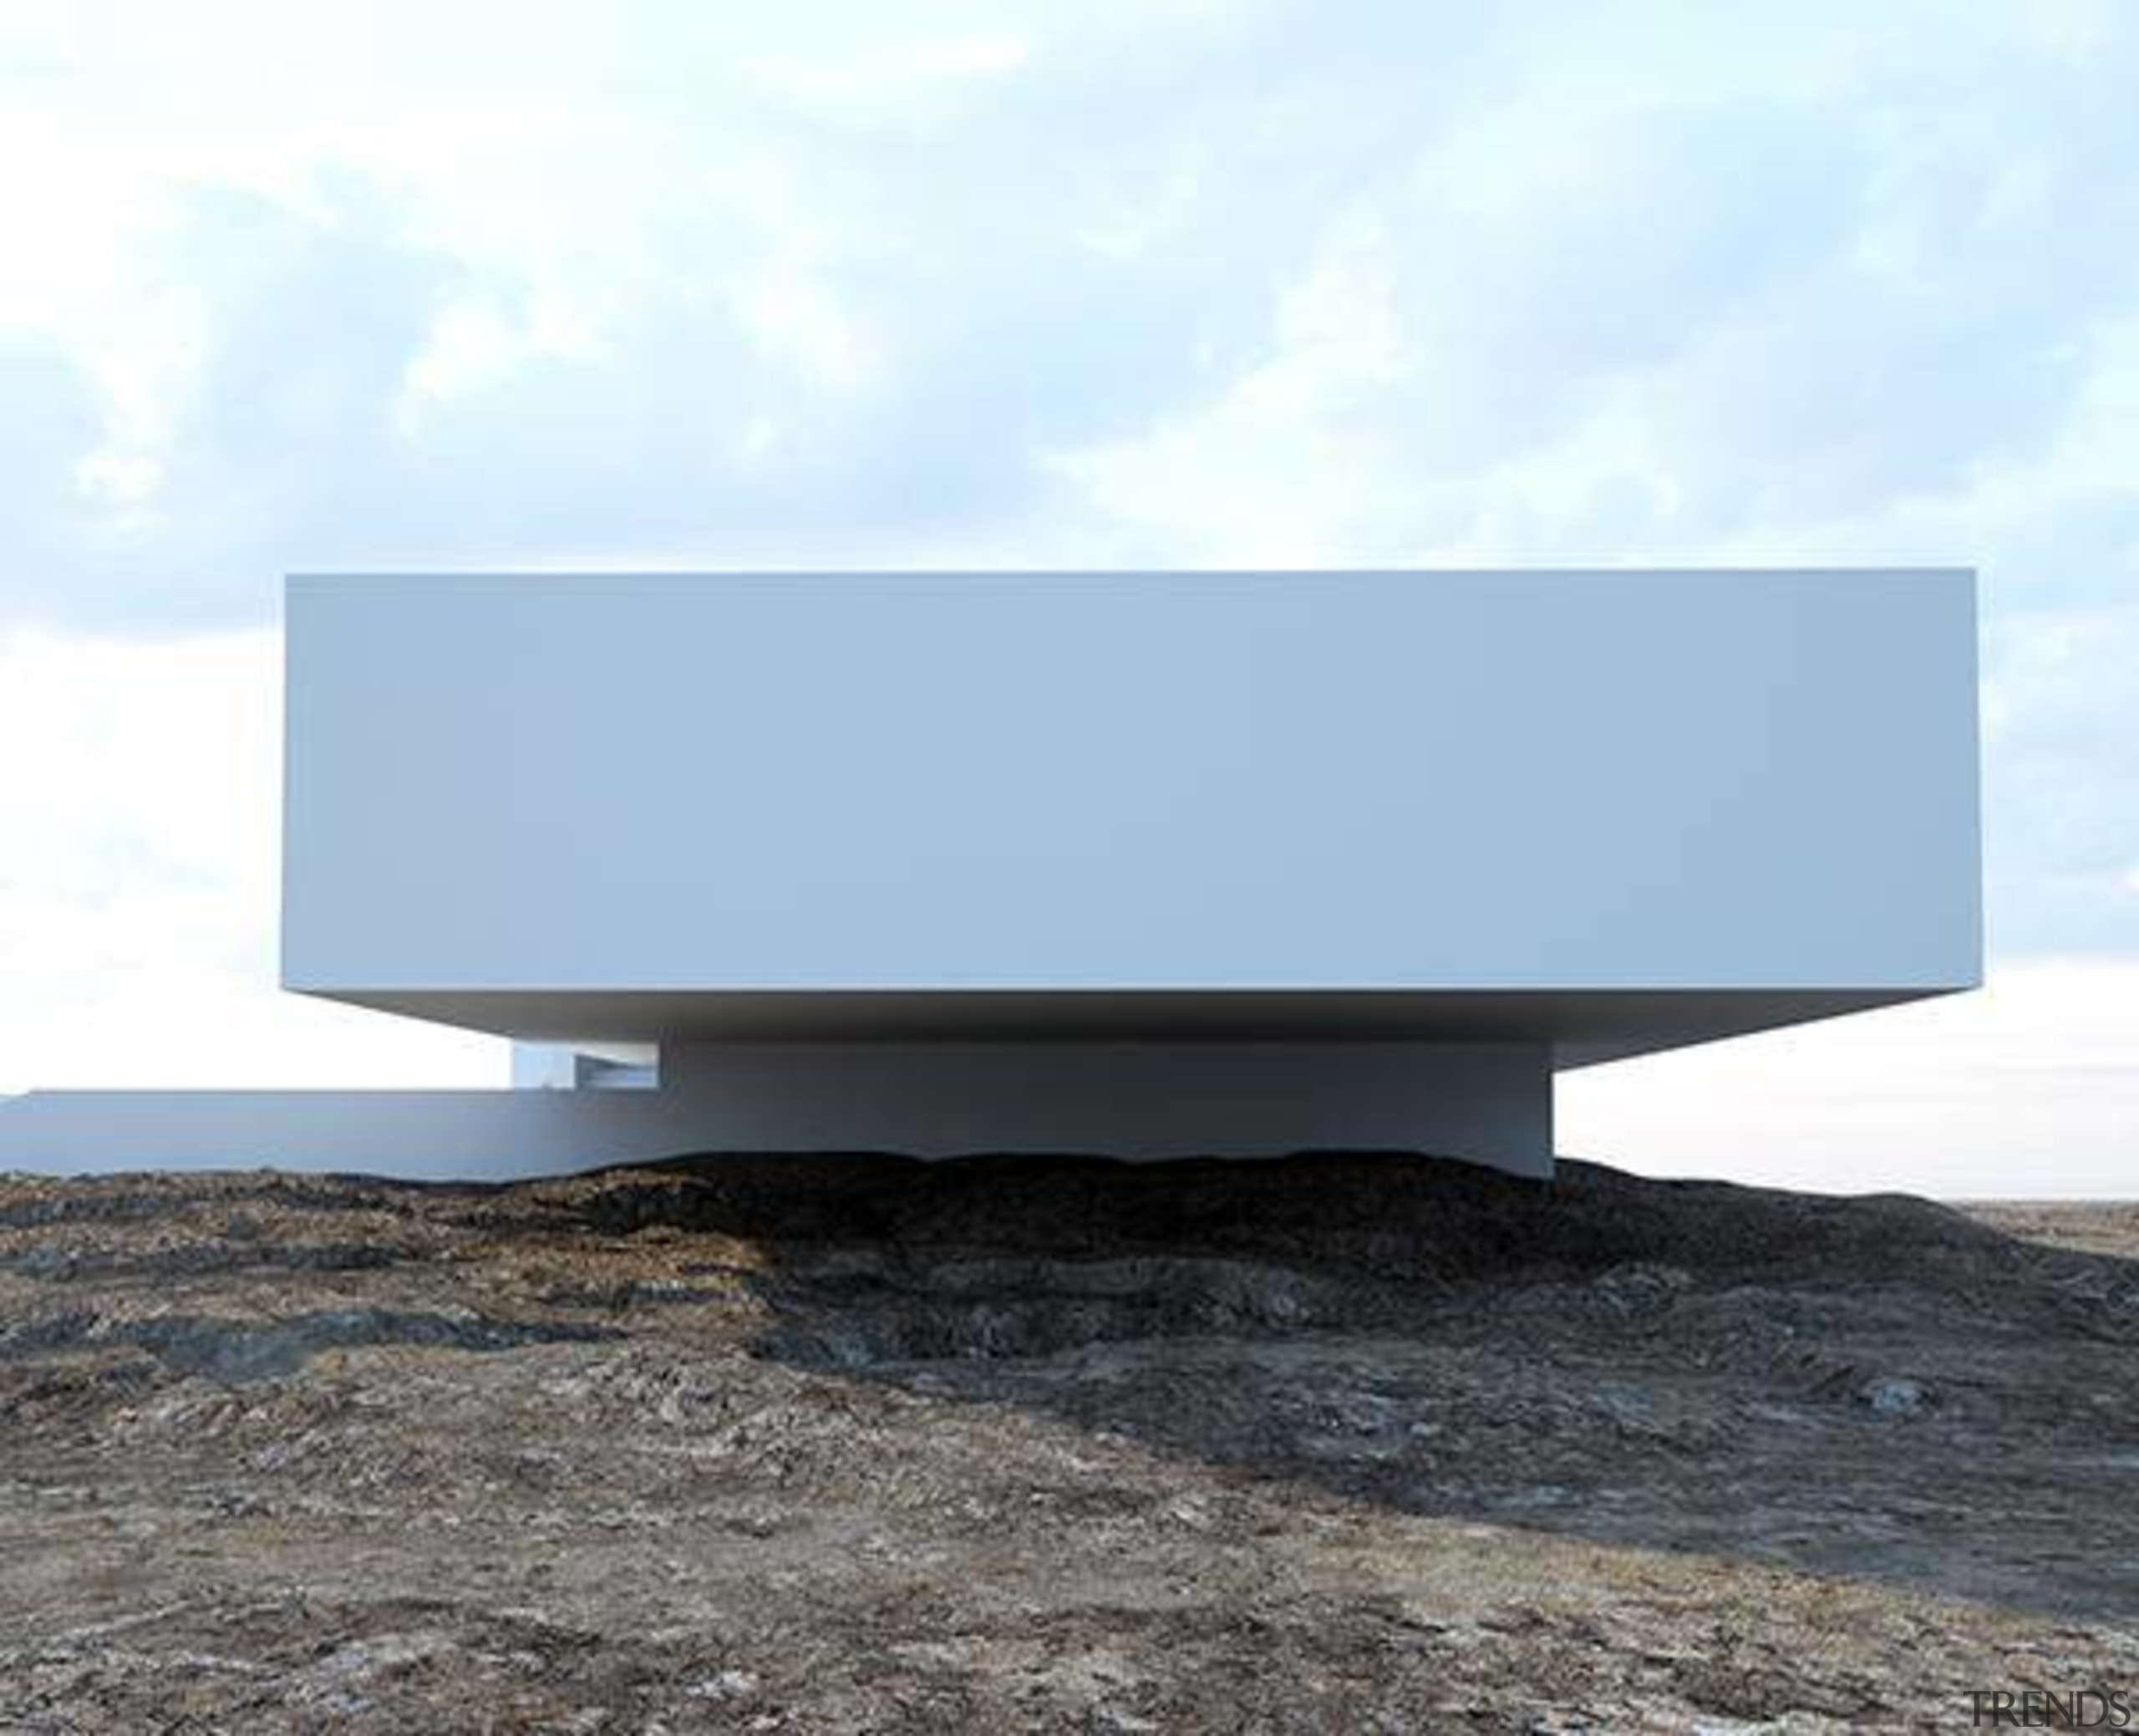 Balancing – the house has an impressive cantilever architecture, product design, sky, table, white